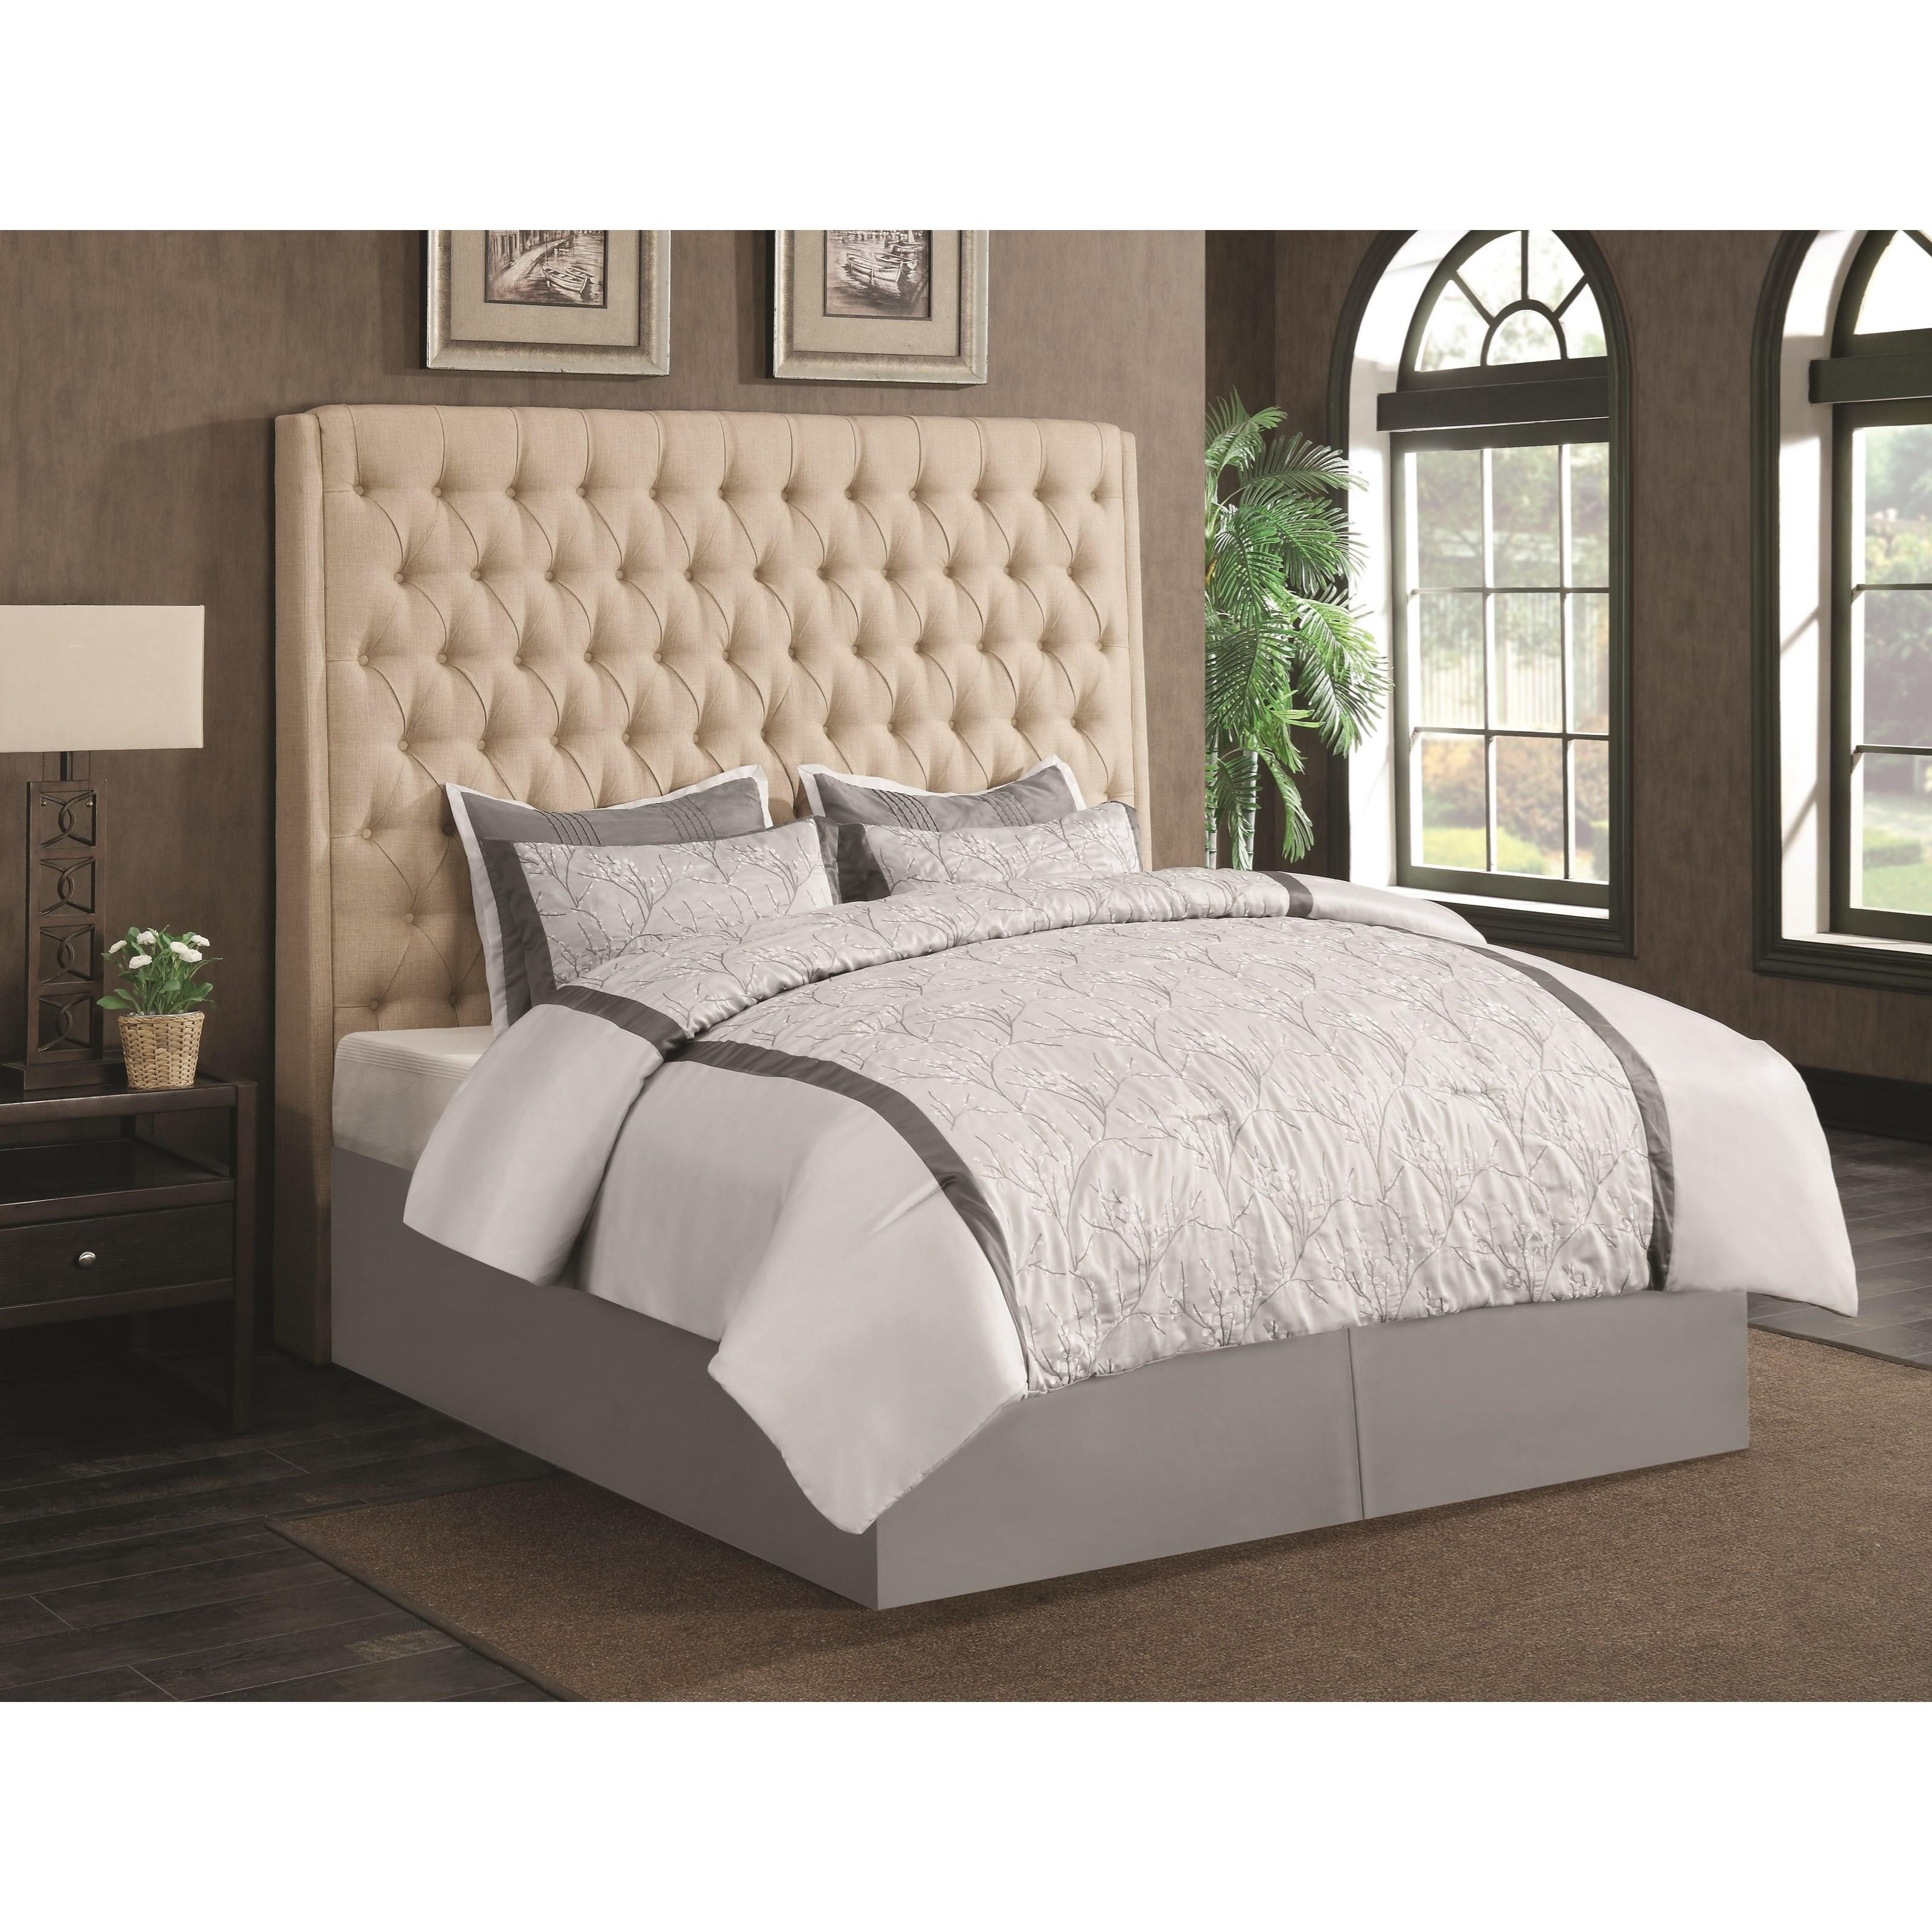 Upholstered Beds Queen Bed by Coaster at Standard Furniture